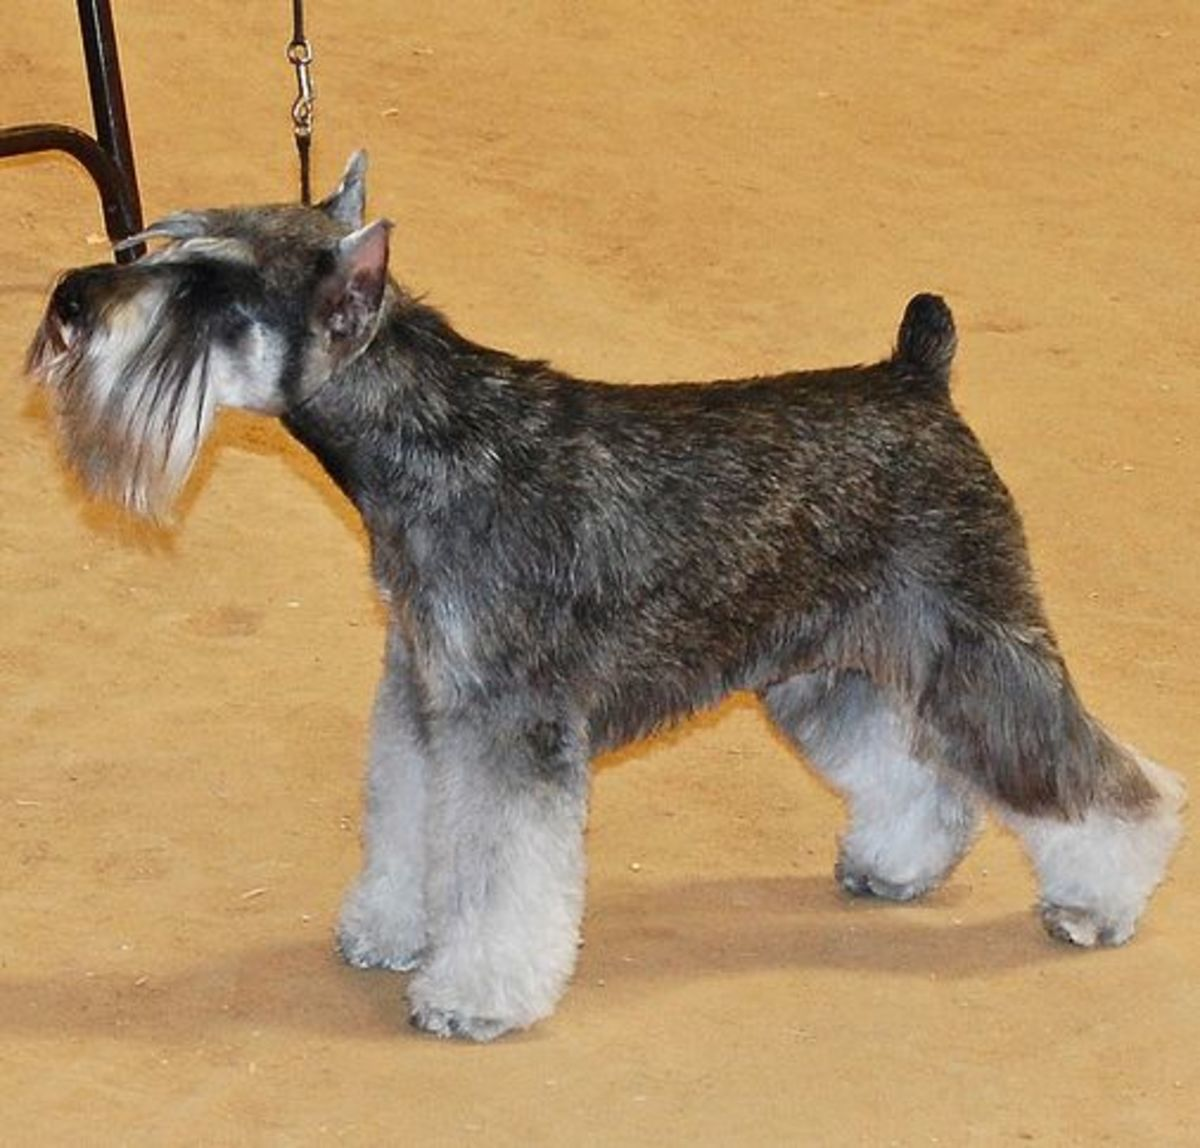 When Miniature Schnauzers are groomed, they are an impressive looking small dog.